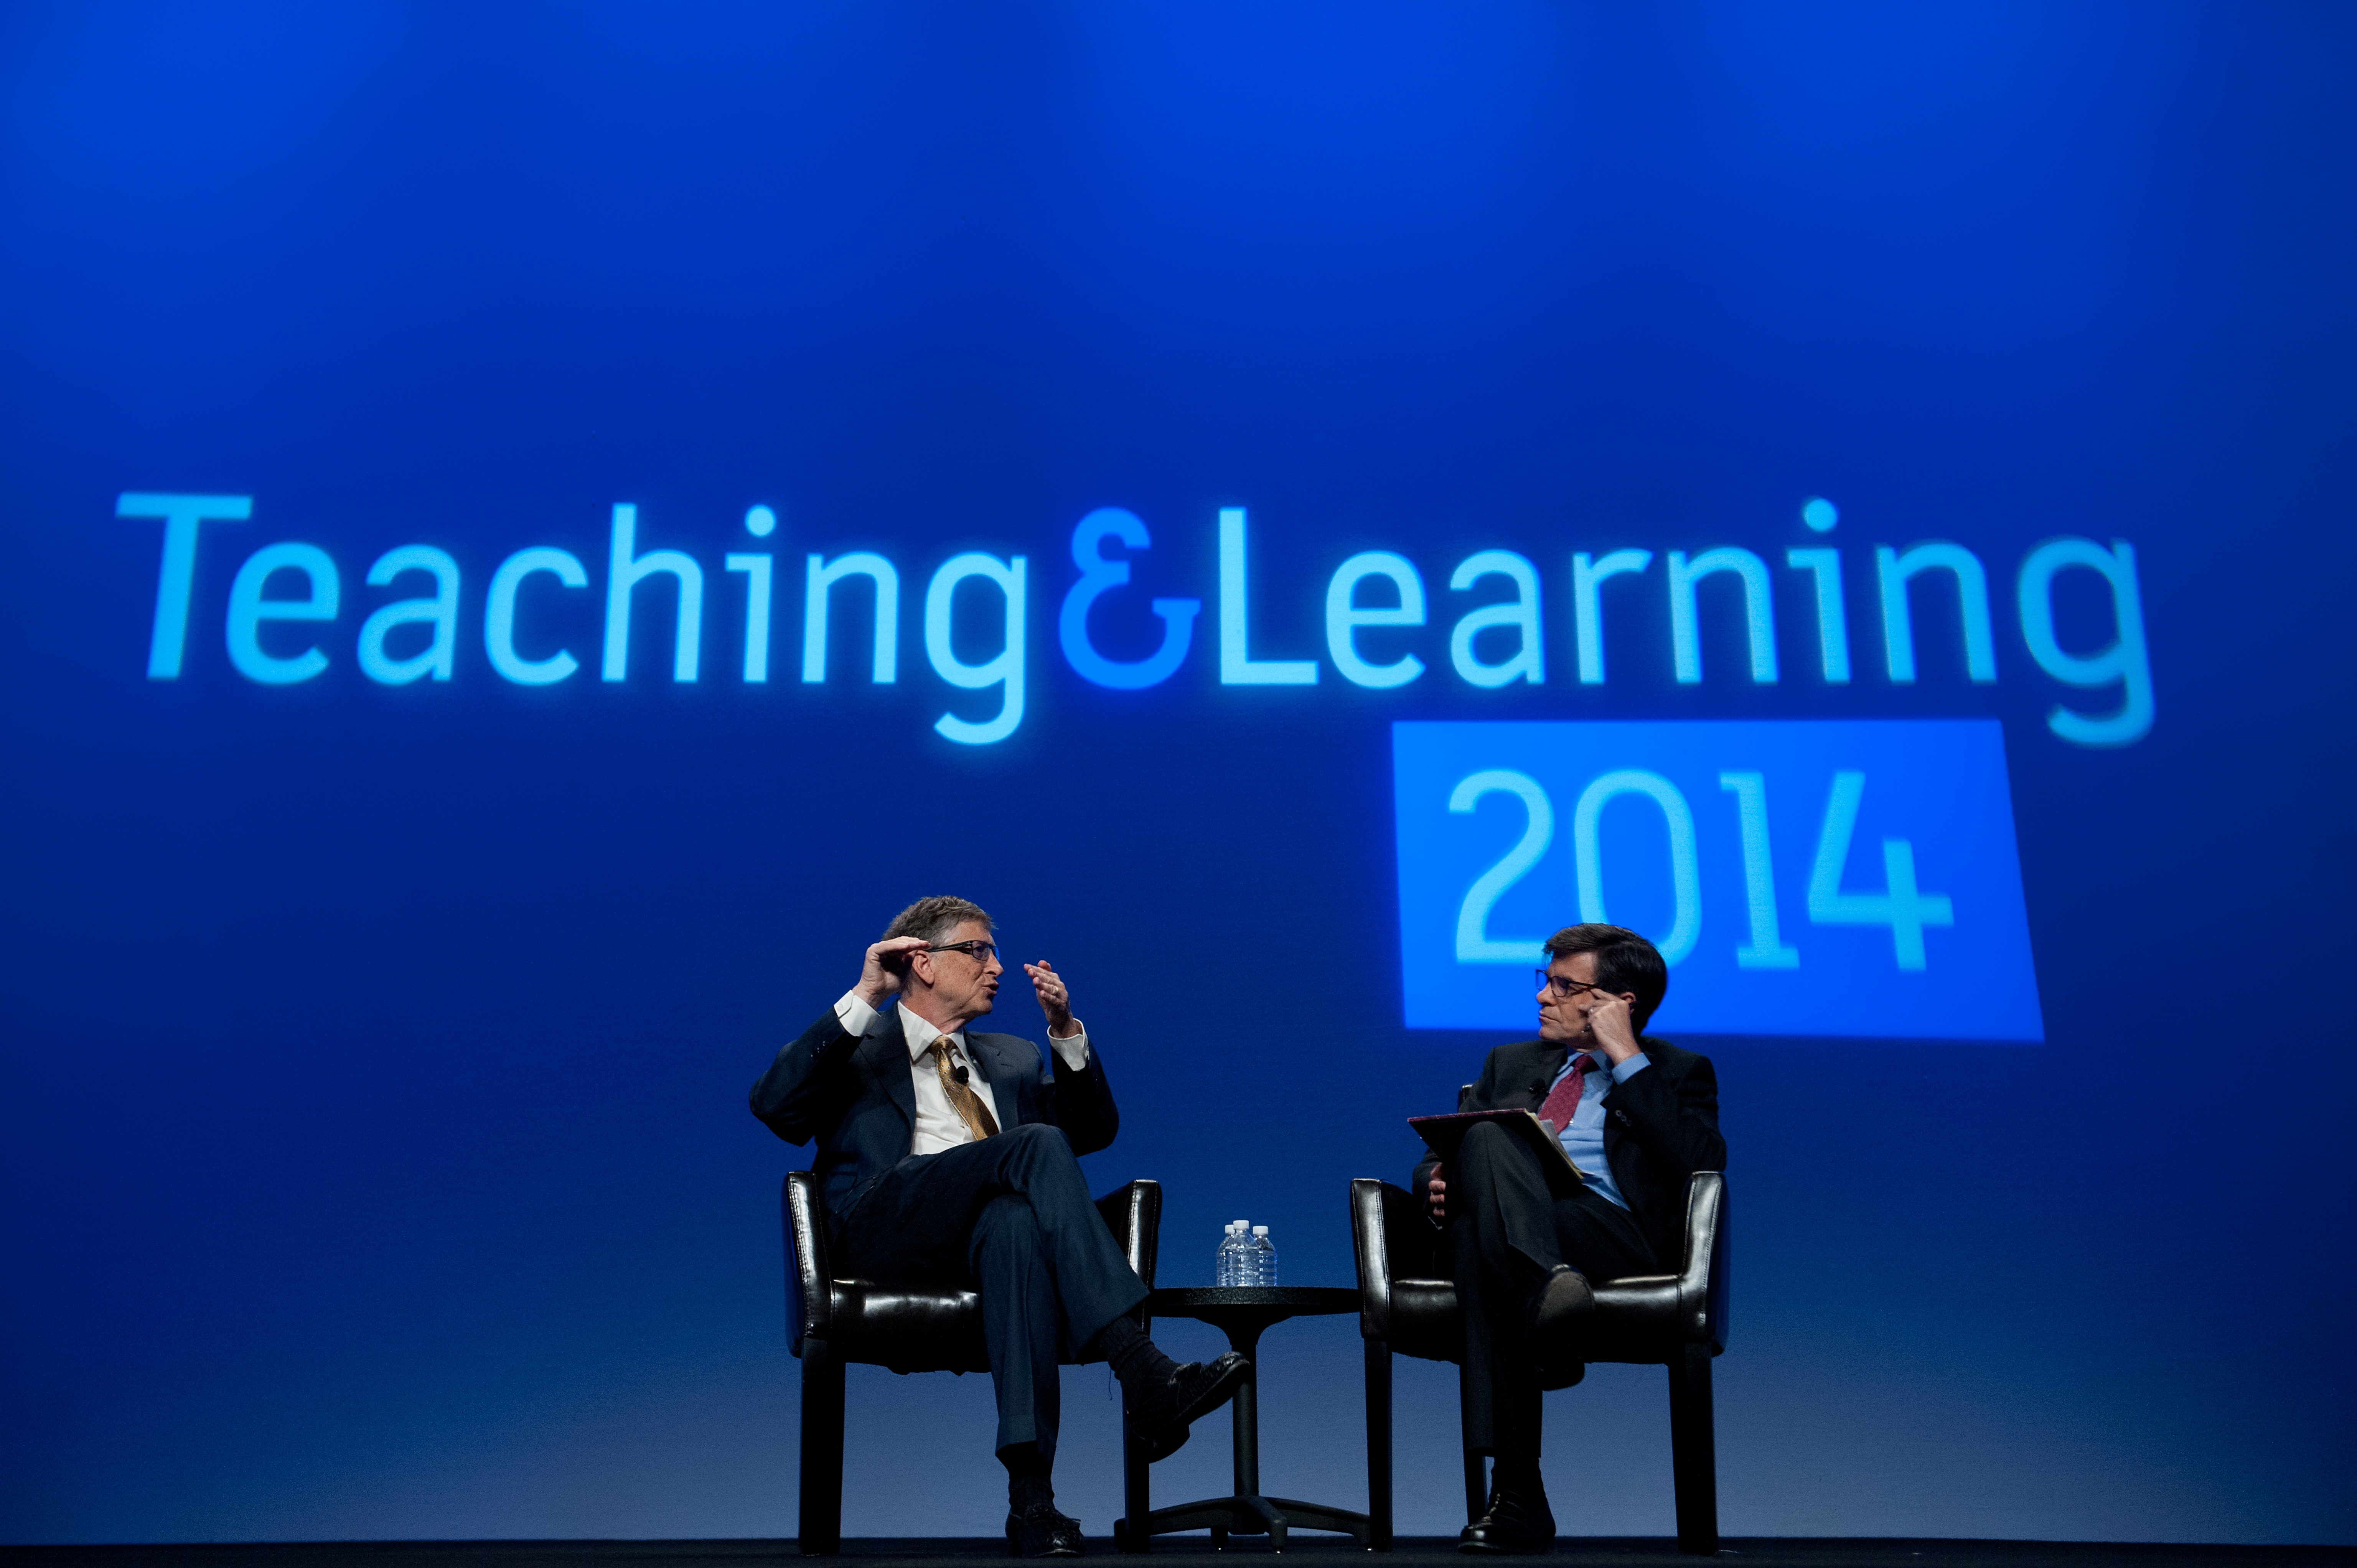 """(Left to right) Microsoft founder Bill Gates and television host George Stephanopoulos sit face-to-face on stage during an interview in front of a blue projected backdrop that reads """"Teaching & Learning 2014""""."""